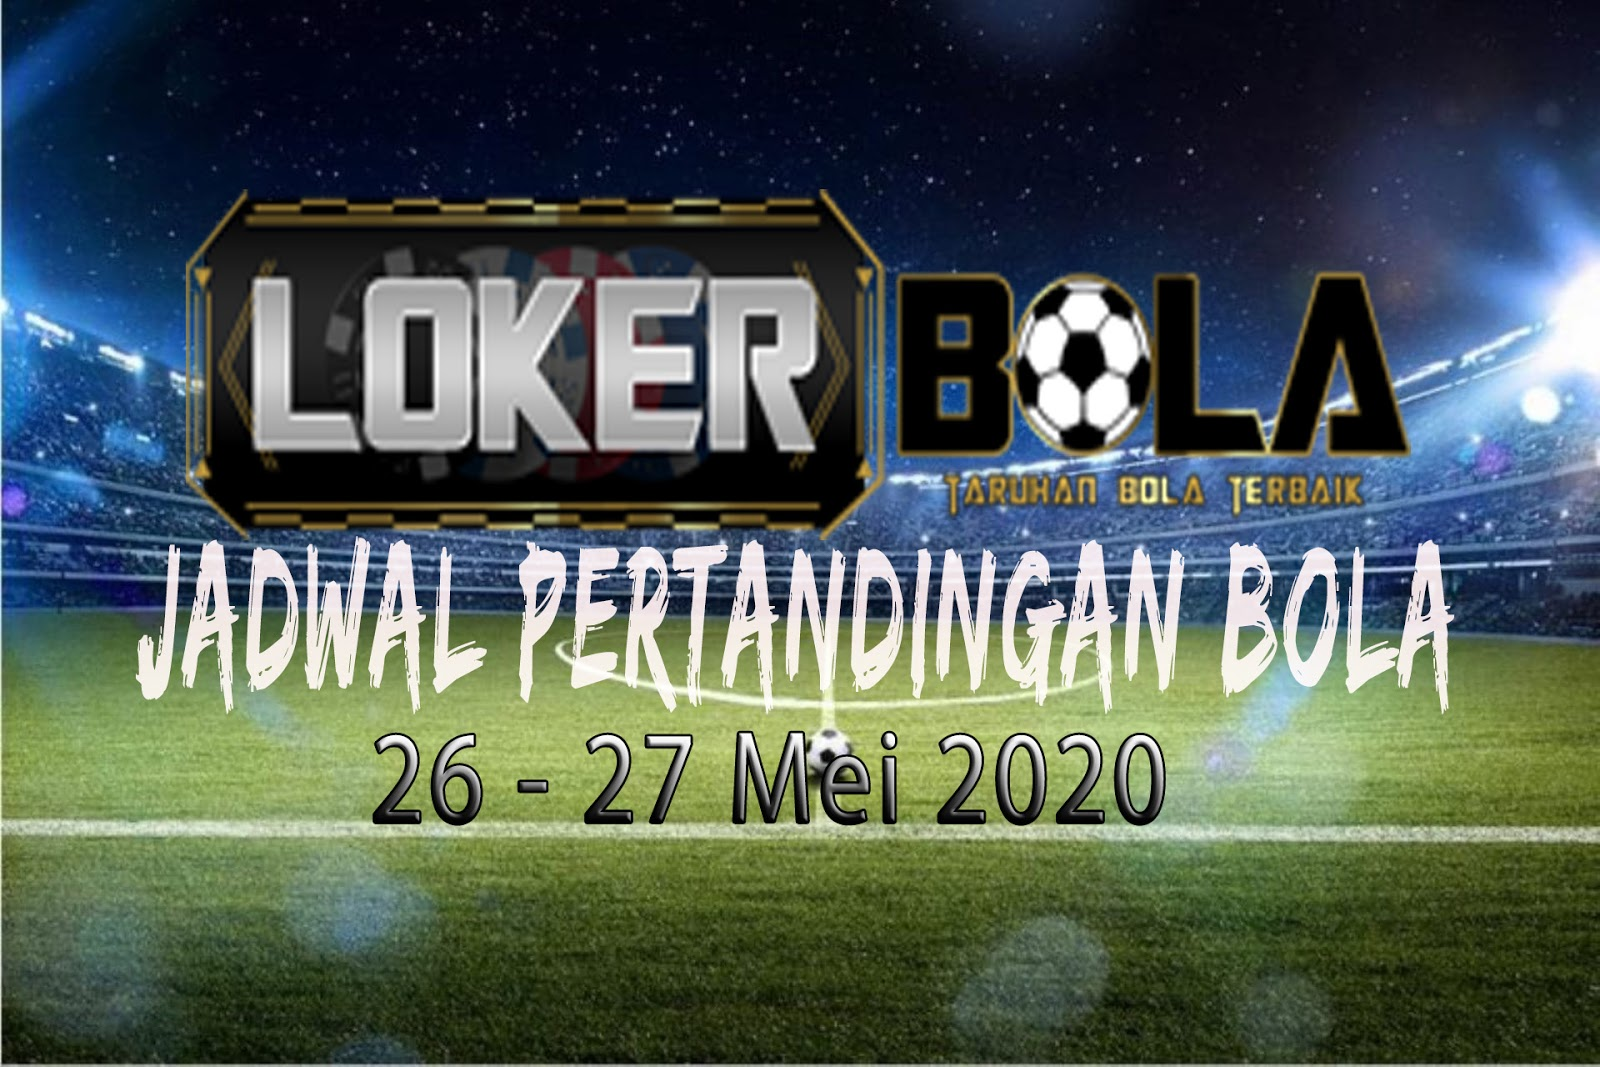 JADWAL PERTANDINGAN BOLA 26 – 27 May 2020